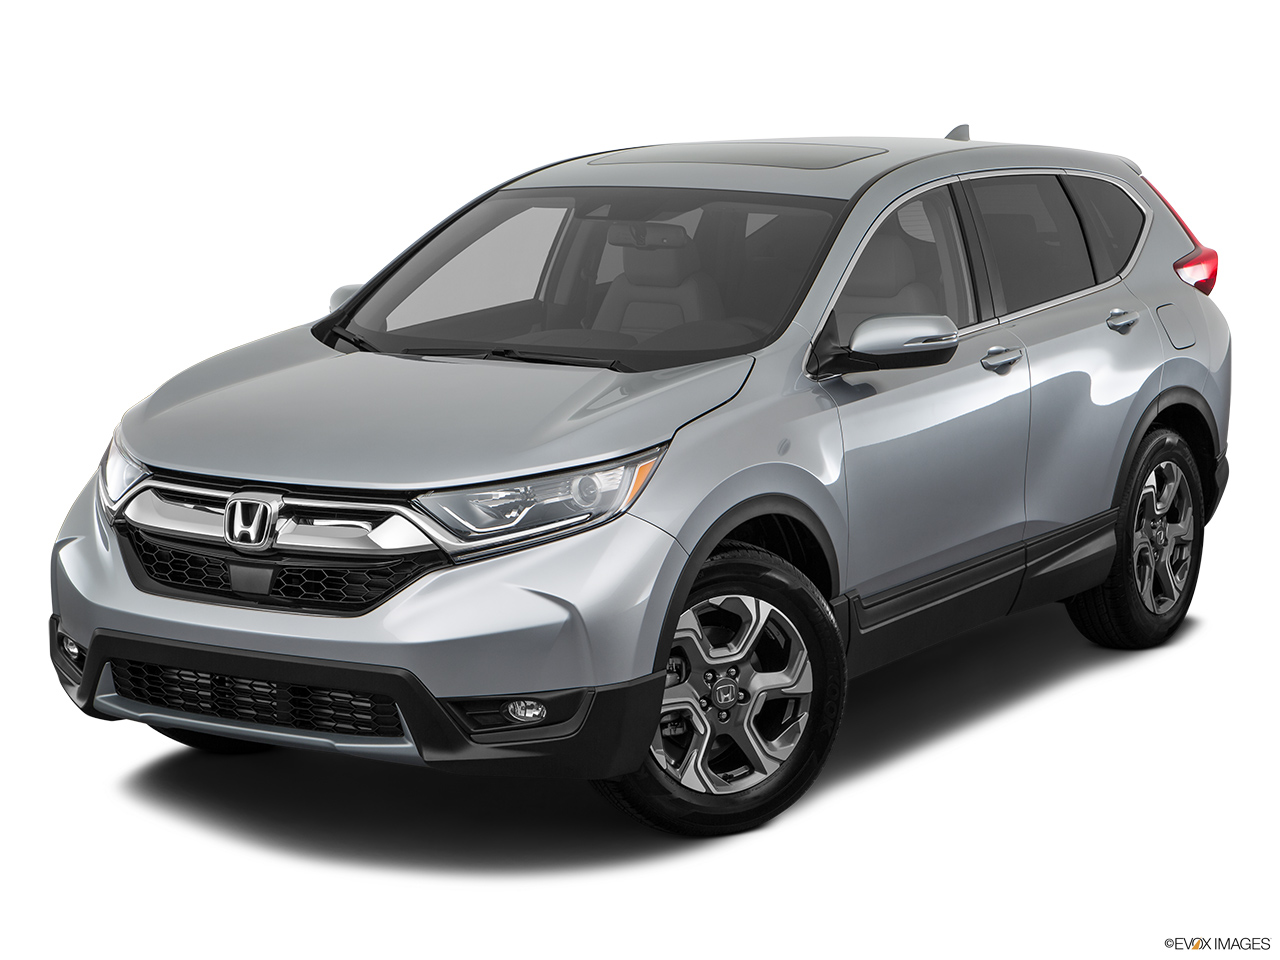 Honda CR-V 2018 Touring AWD in UAE: New Car Prices, Specs, Reviews & Photos | YallaMotor